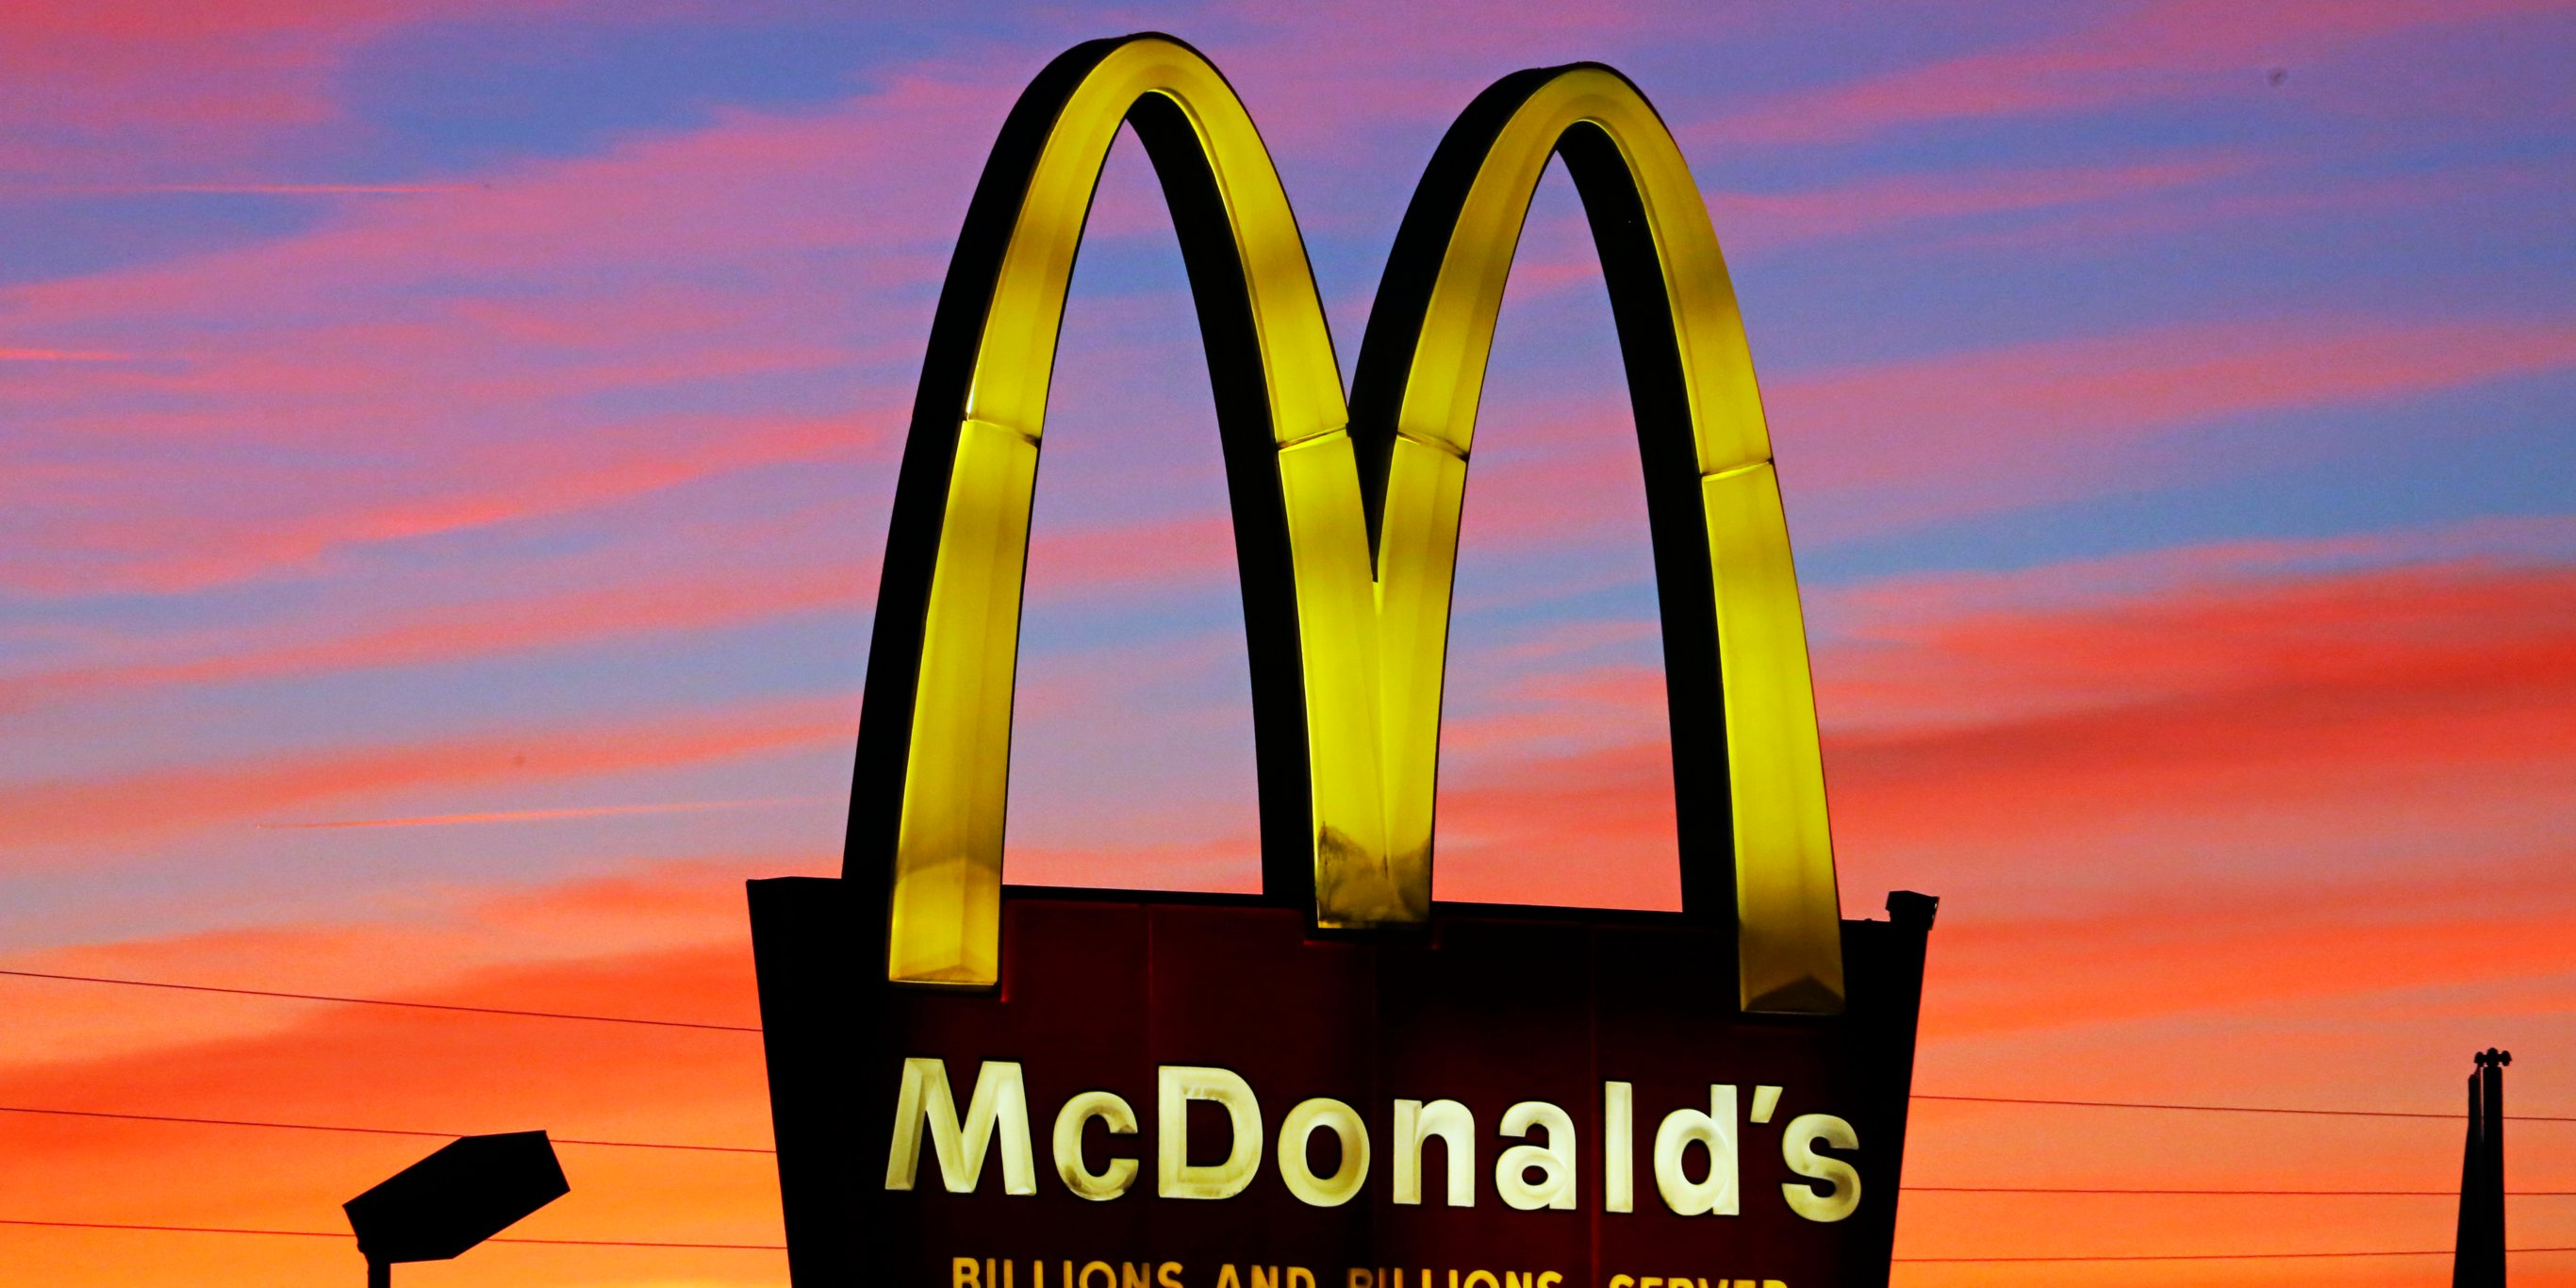 McDonald's demanded that Omnicom create an ad agency dedicated to its business. Now that unit will fold.